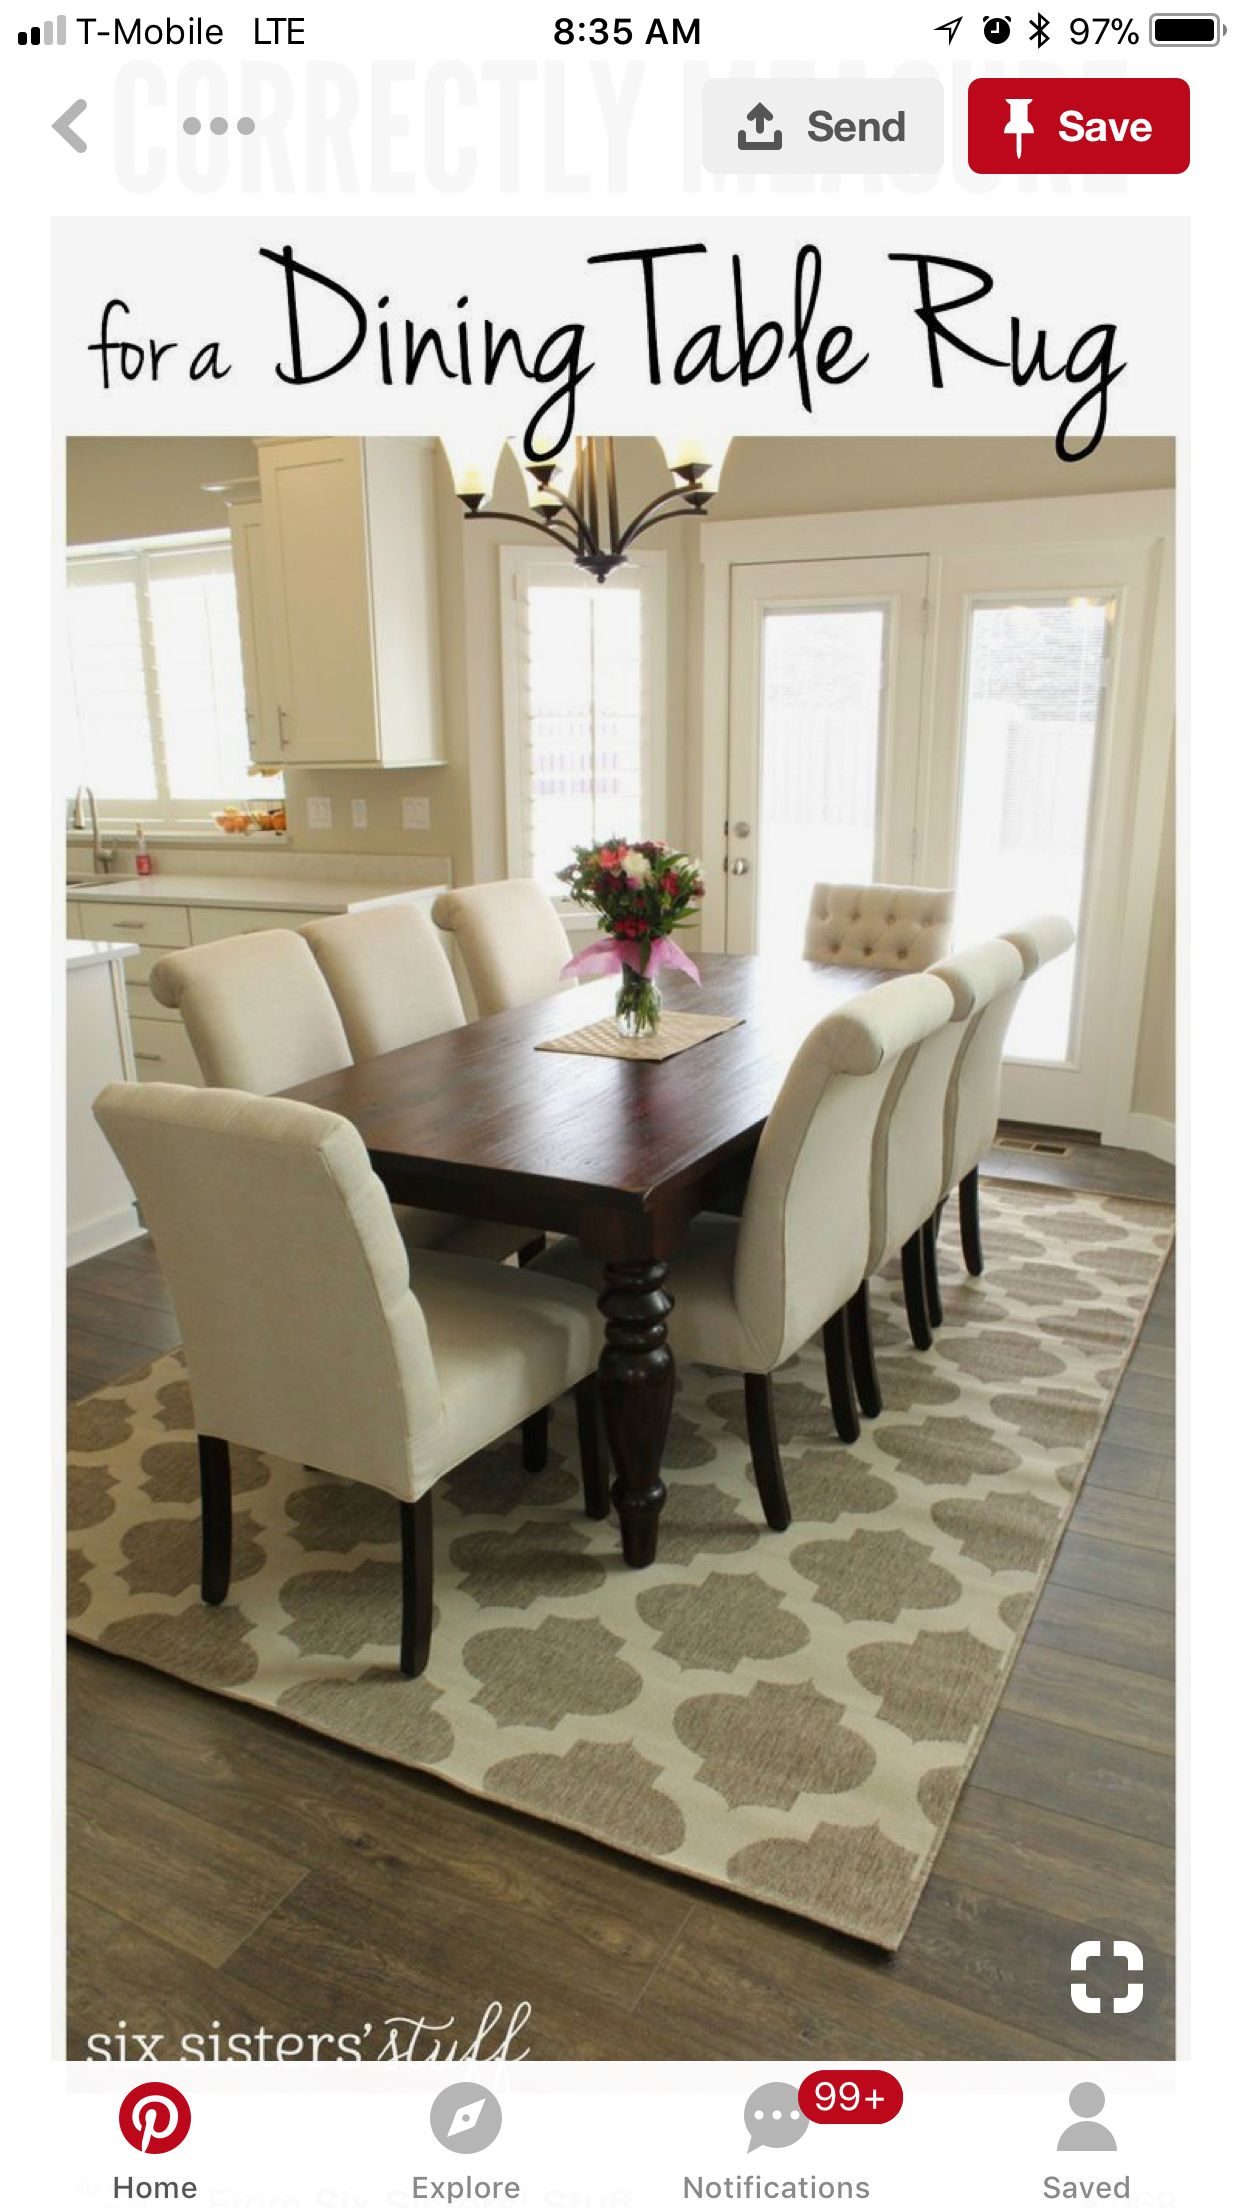 Pin By Samantha Etridge On Dining Room Dining Table Rug Dining